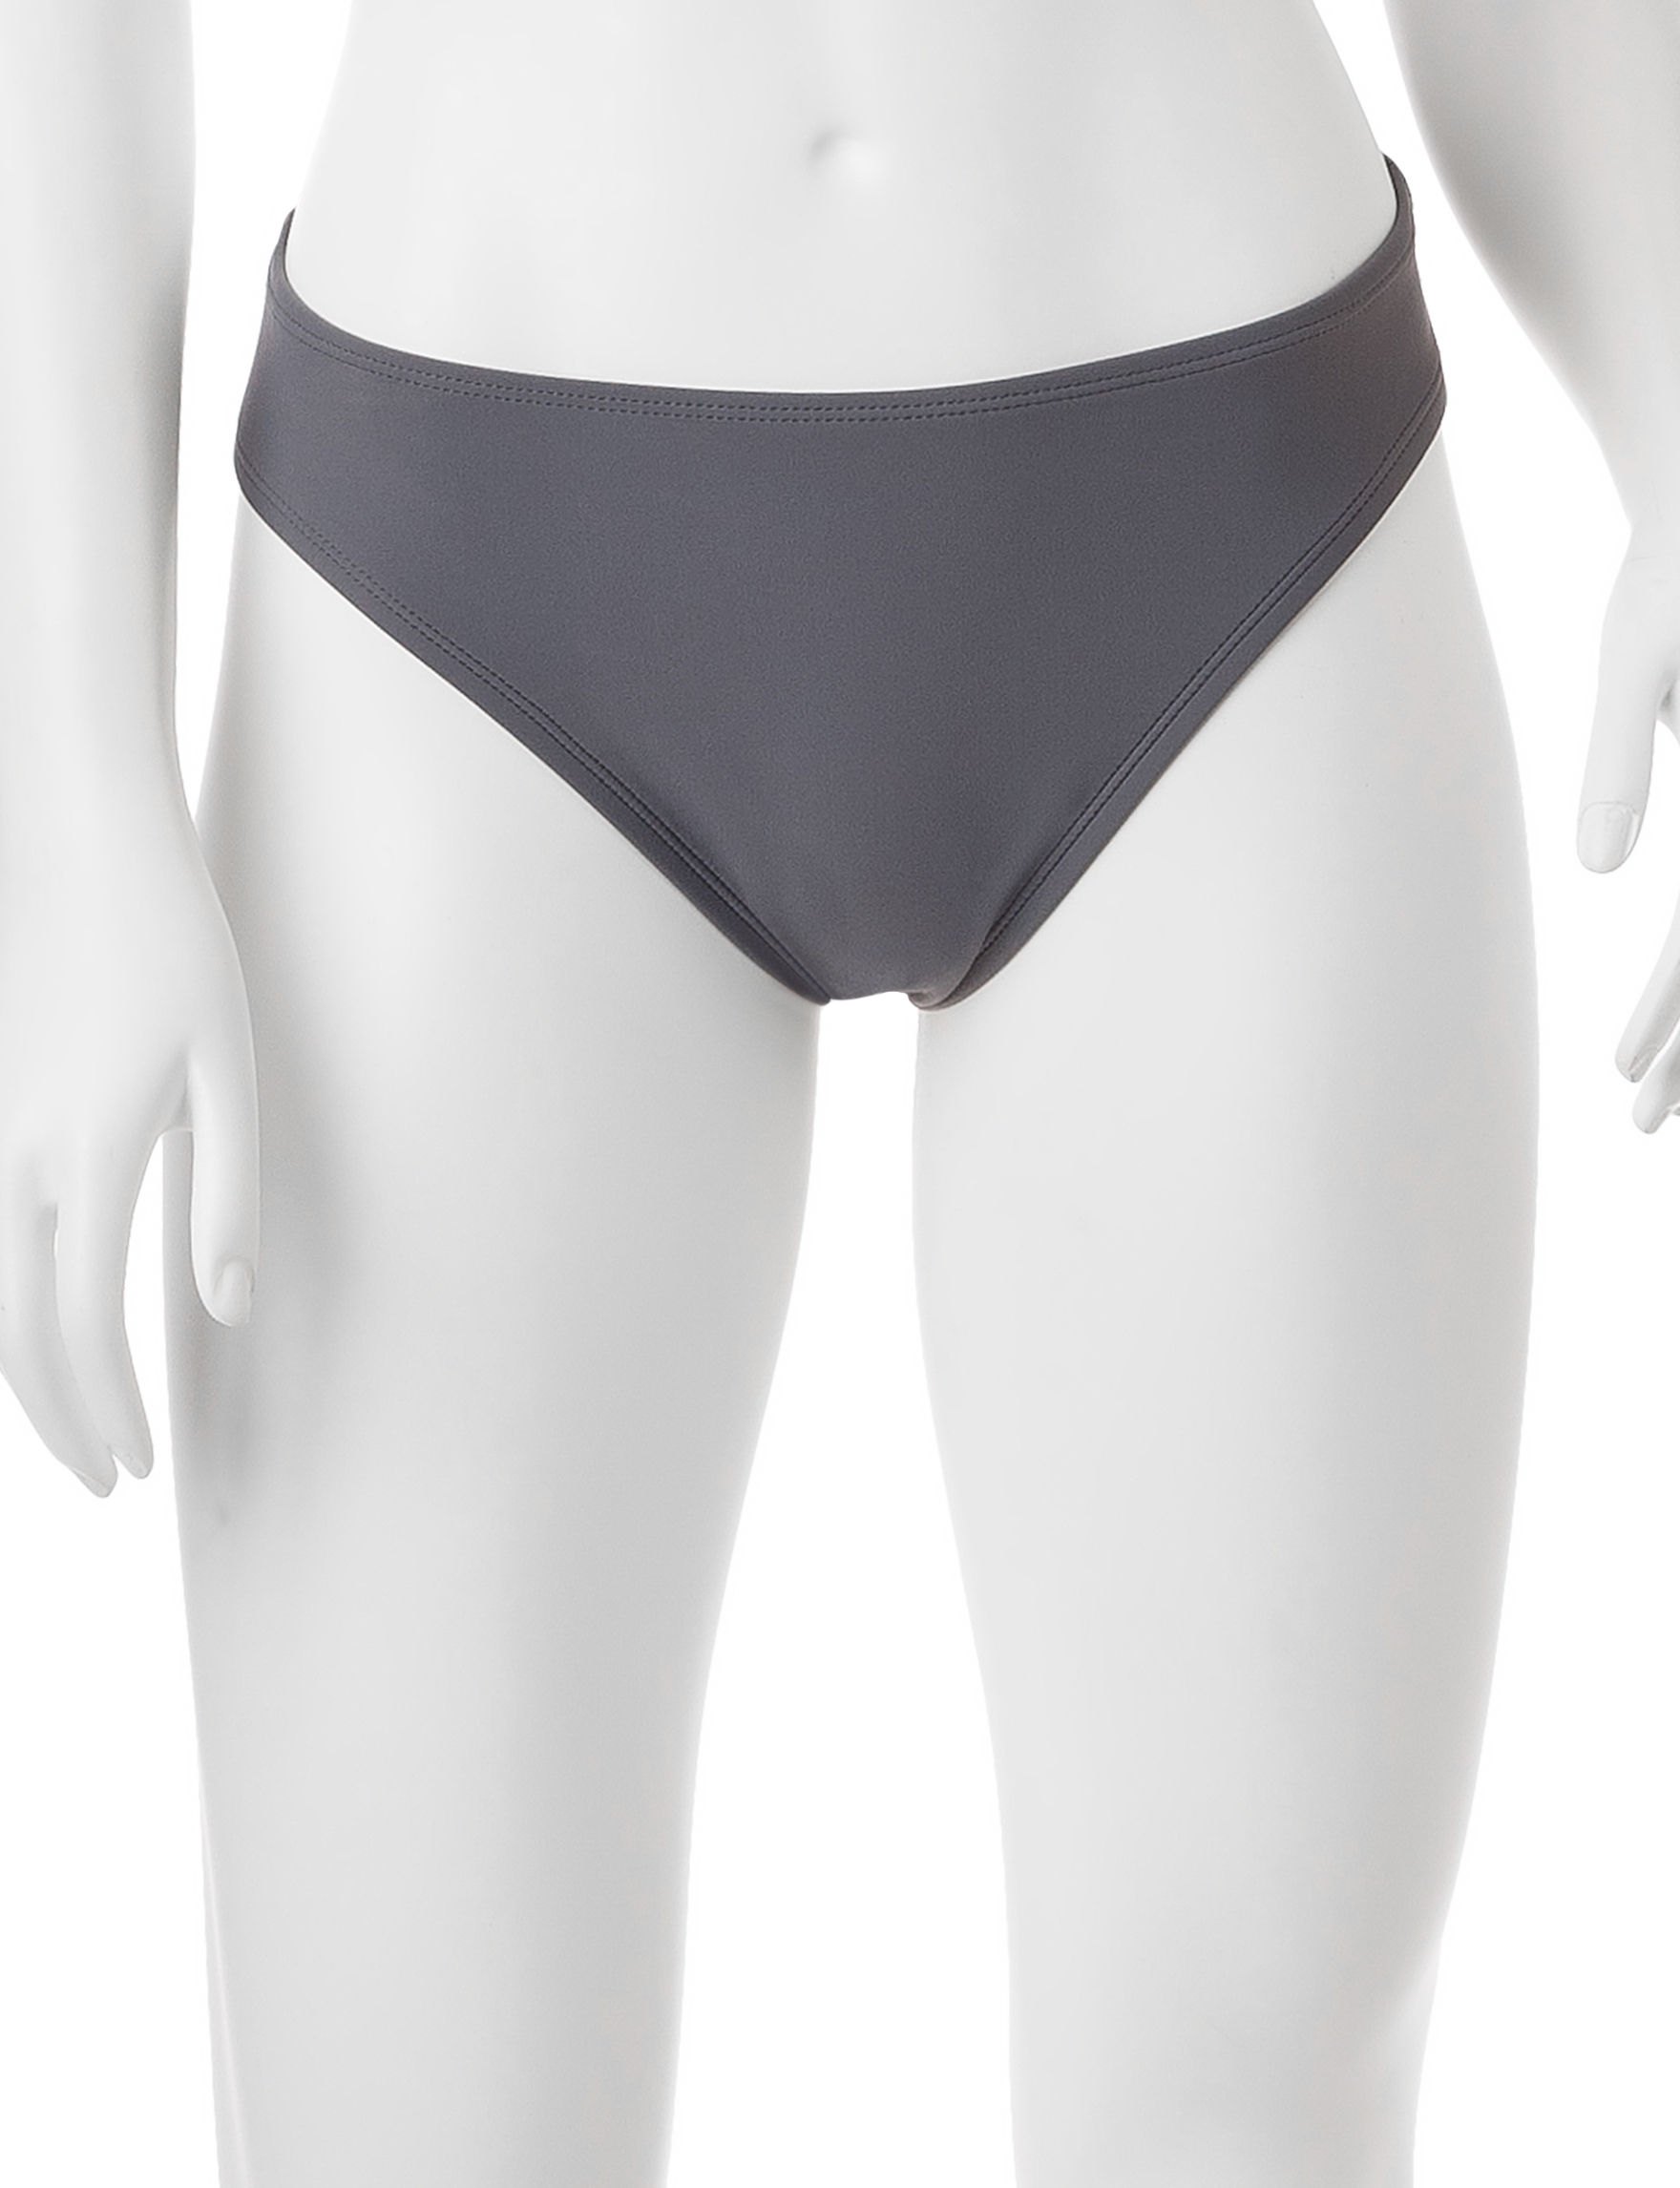 Splashletics Grey Swimsuit Bottoms Hipster